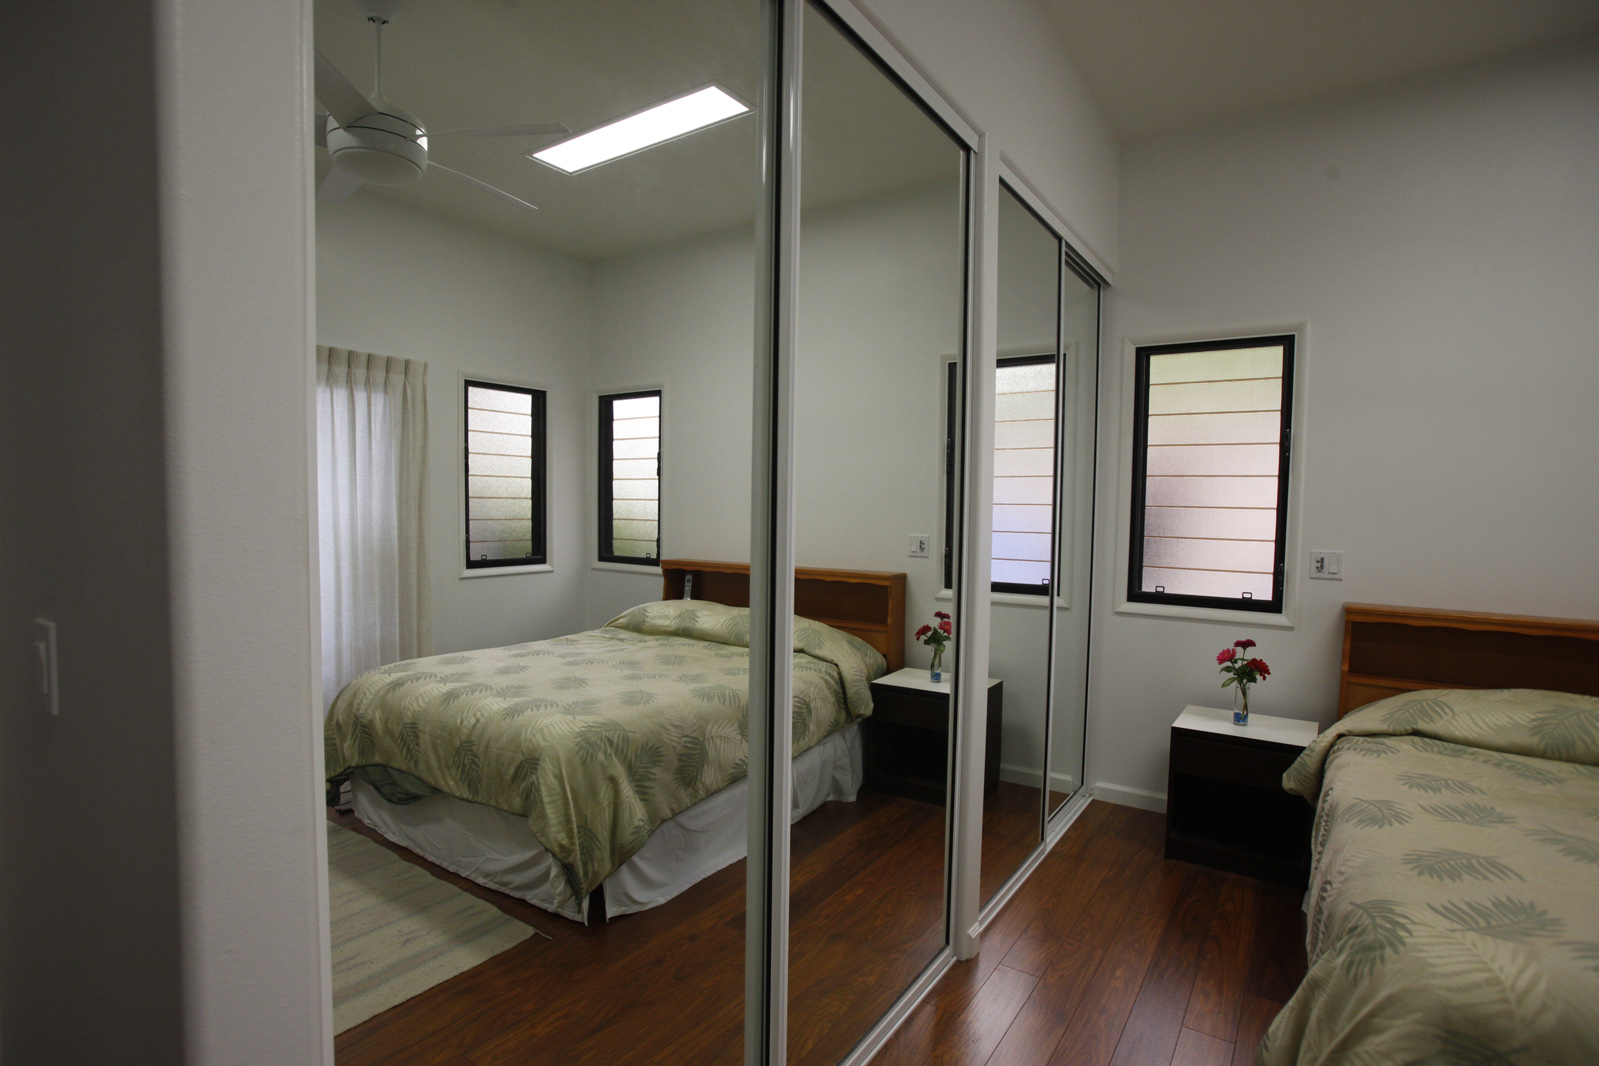 BLOG-mirror-door-bed.jpg